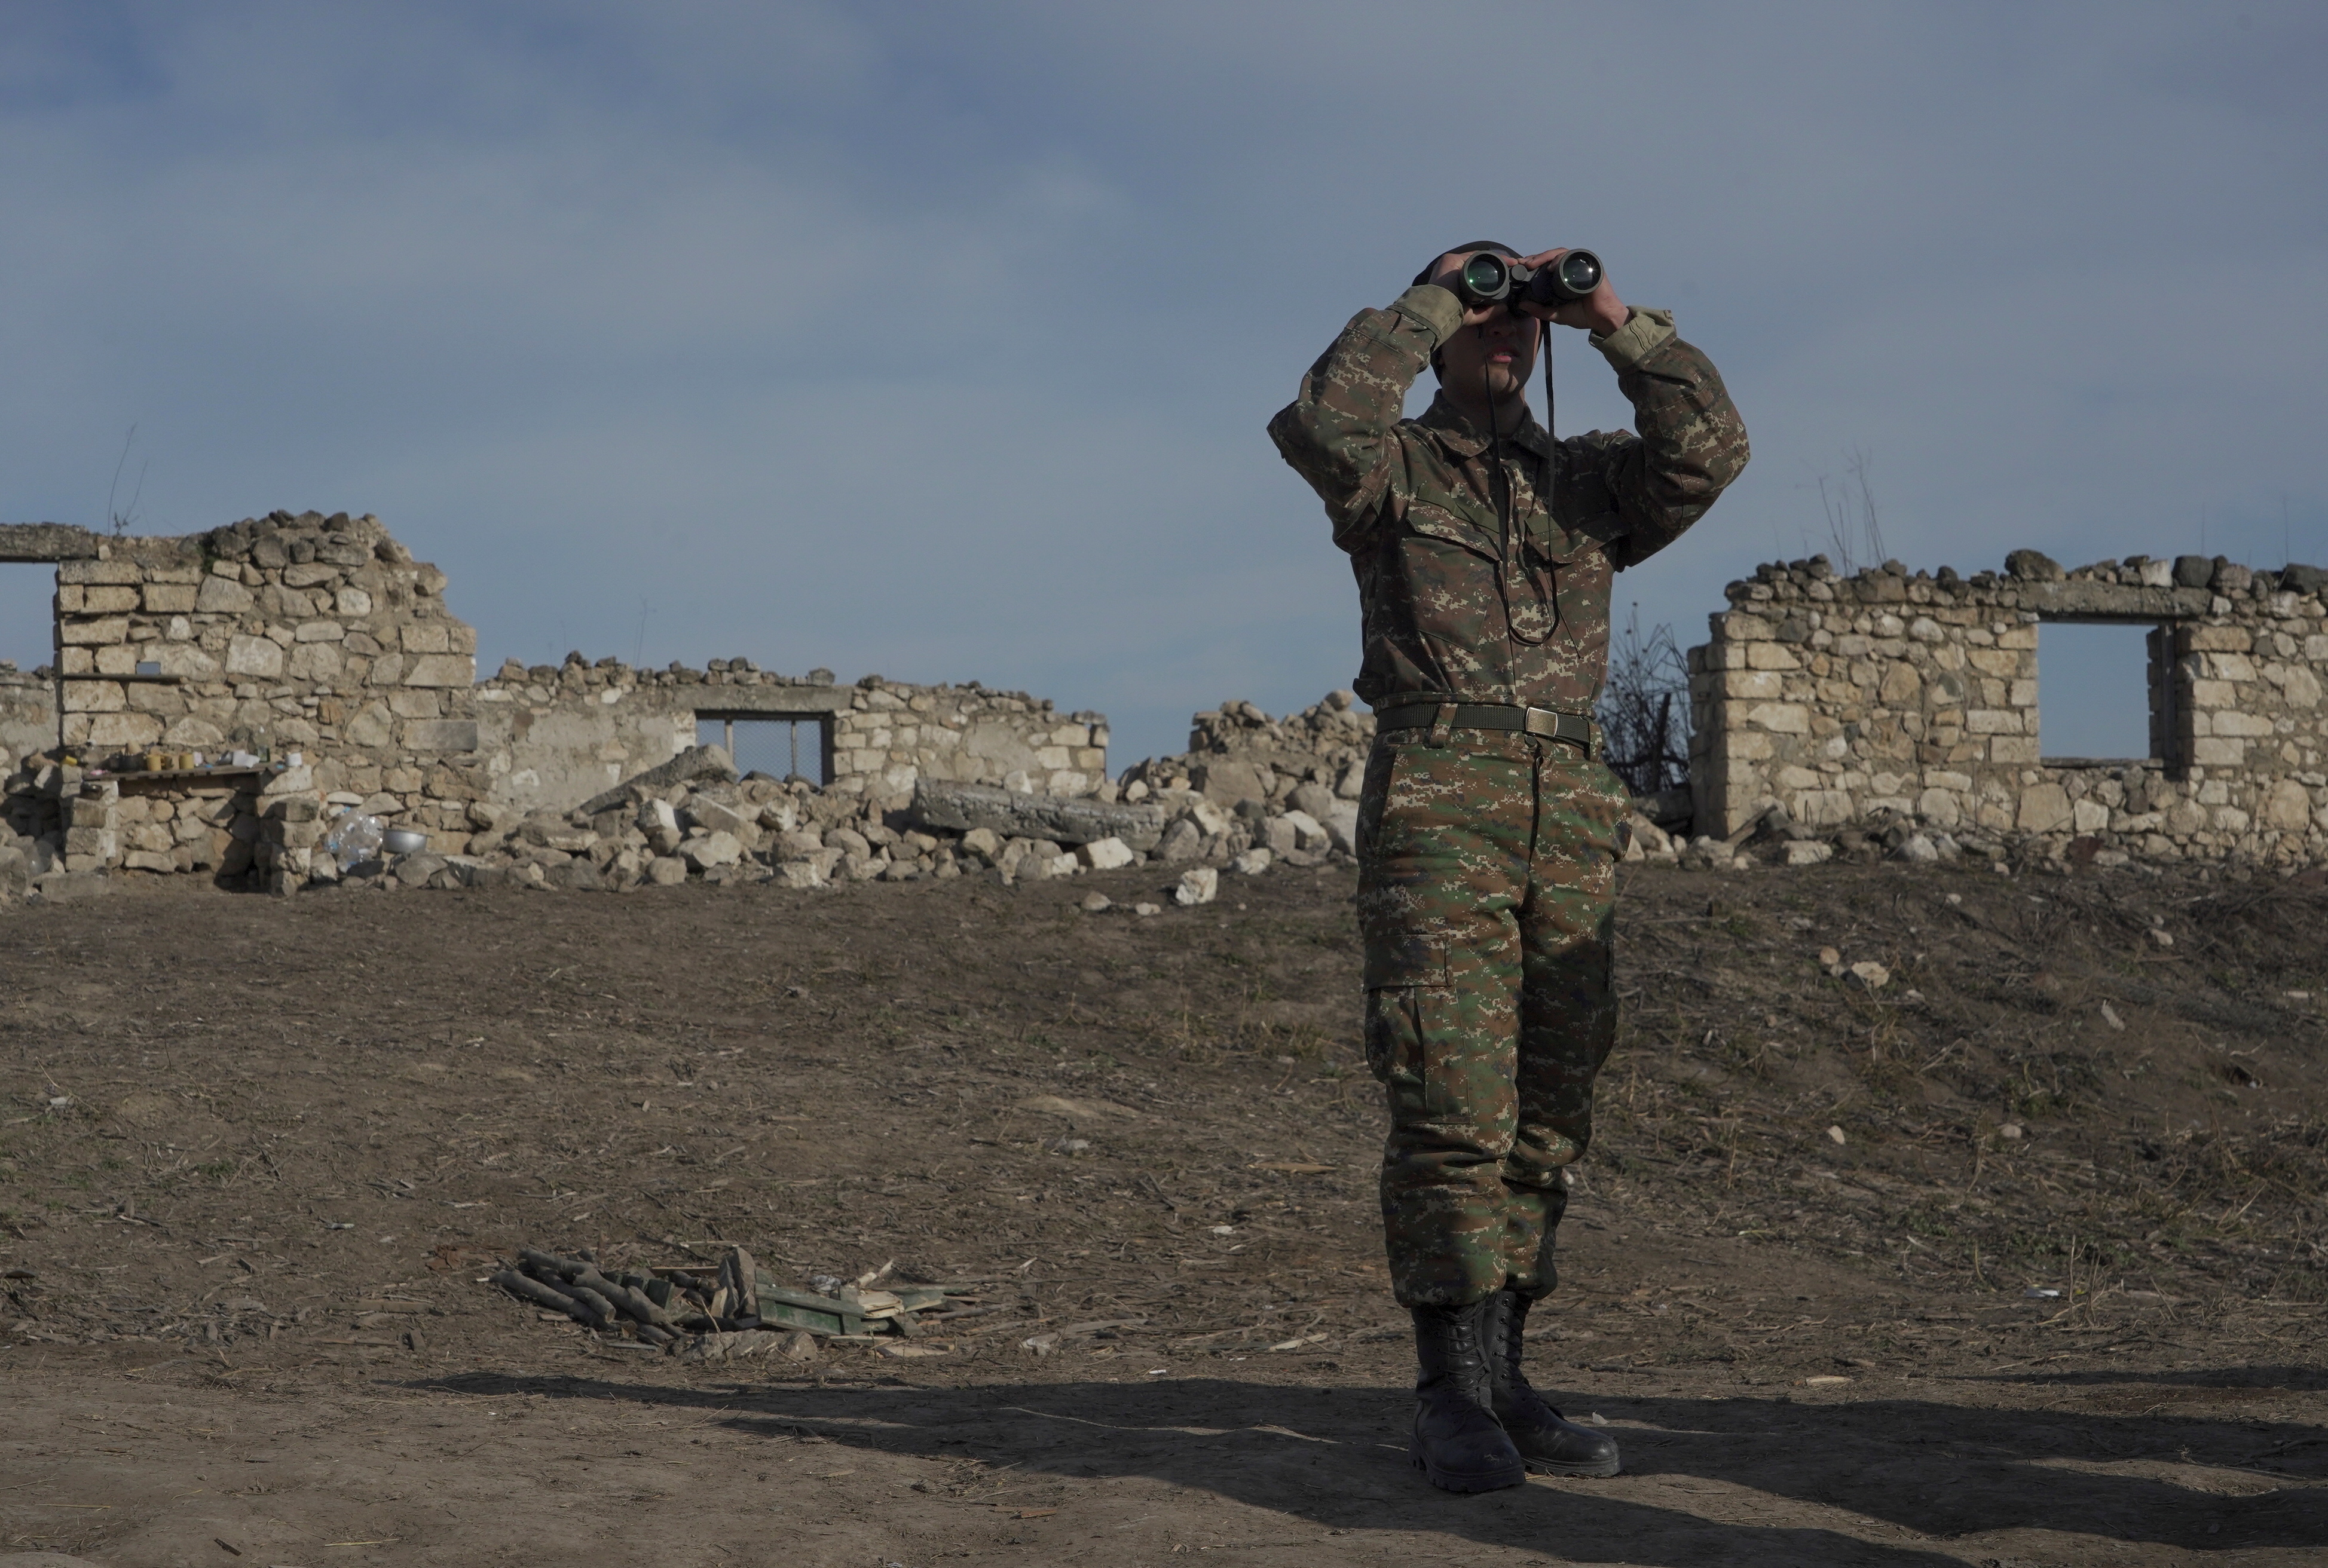 An ethnic Armenian soldier looks through binoculars as he stands at fighting positions near the village of Taghavard in the region of Nagorno-Karabakh, January 11, 2021. Picture taken January 11, 2021. REUTERS/Artem Mikryukov